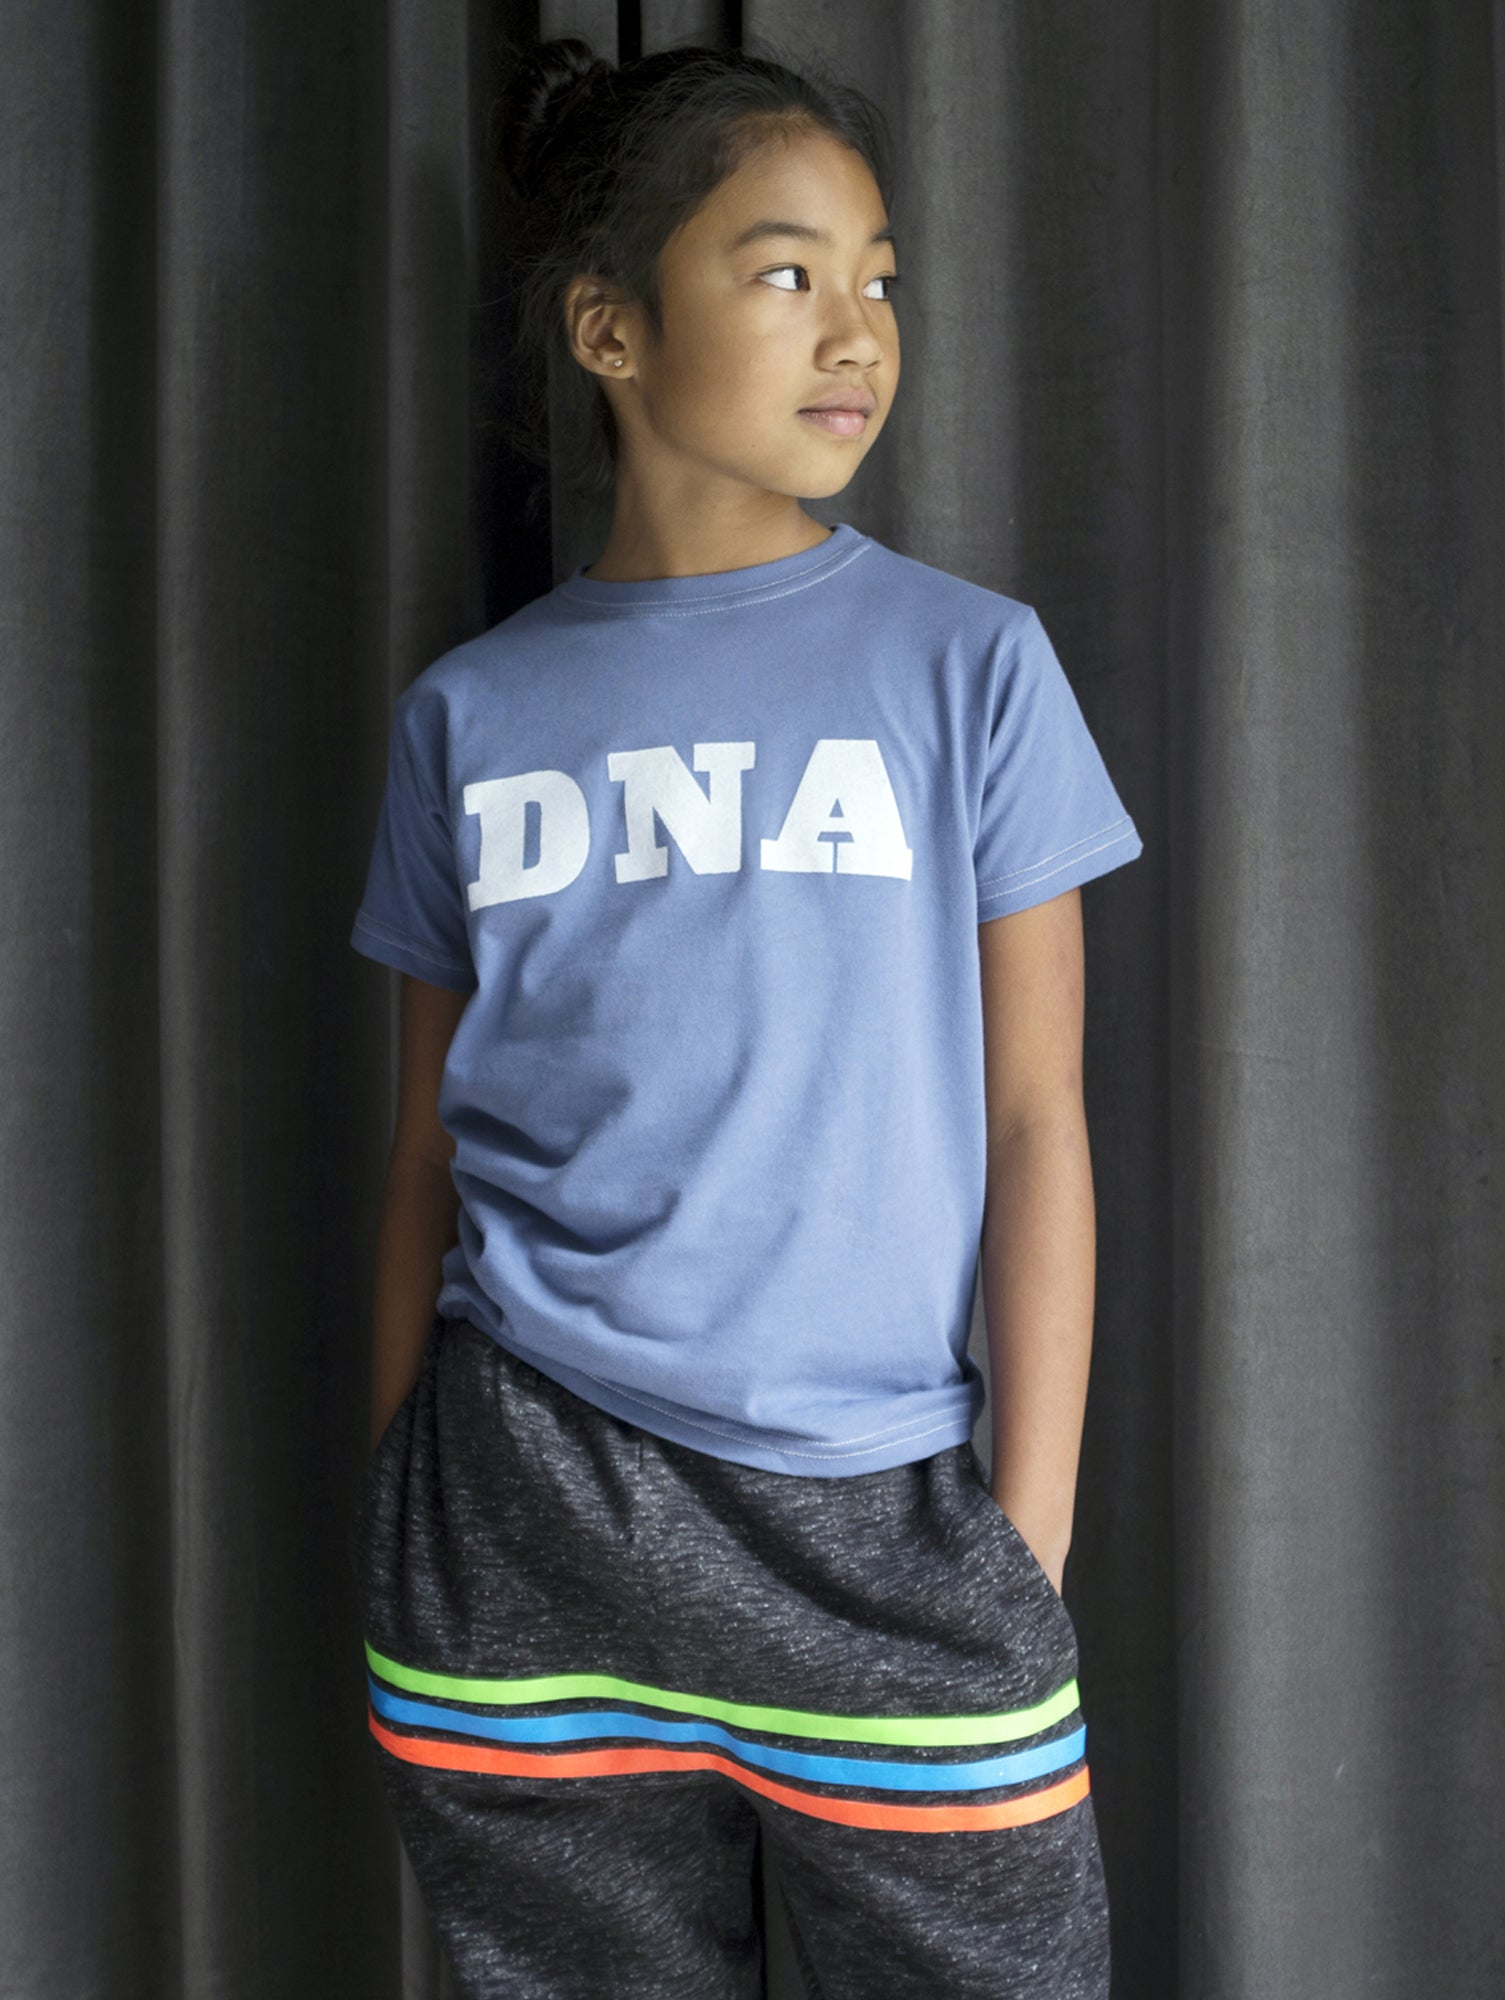 DNA T-SHIRT IN 5/6 ONLY